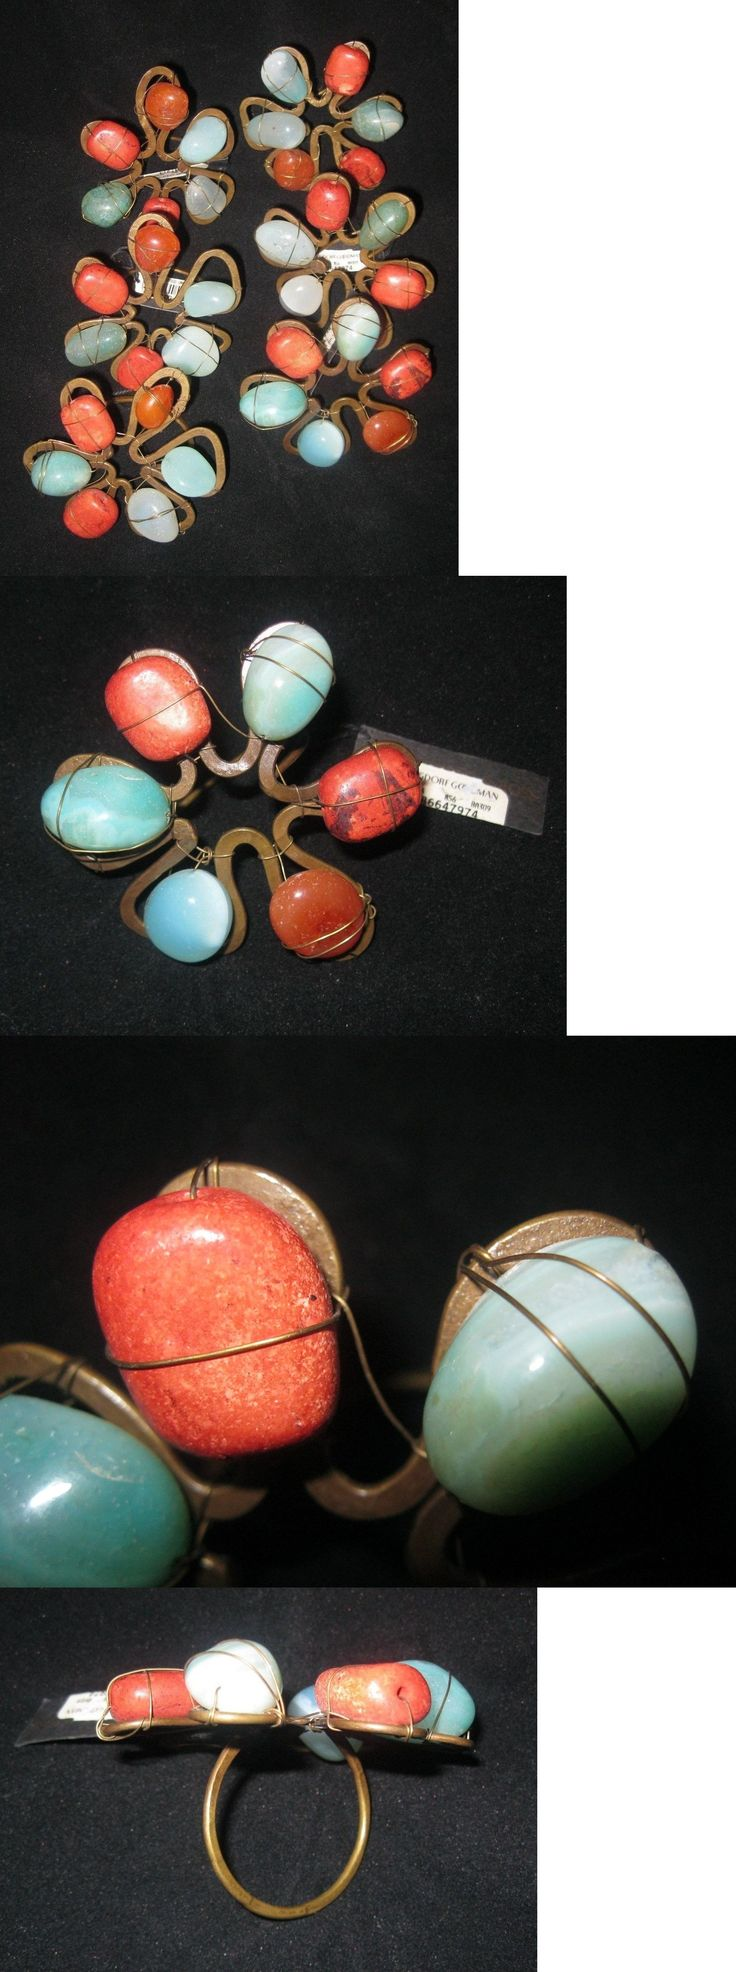 Napkin Rings and Holders 20658: Nwt ~ Dransfield And Ross Set Of 6 Southwestern Style Metal And Stone Napkin Rings -> BUY IT NOW ONLY: $65 on eBay!